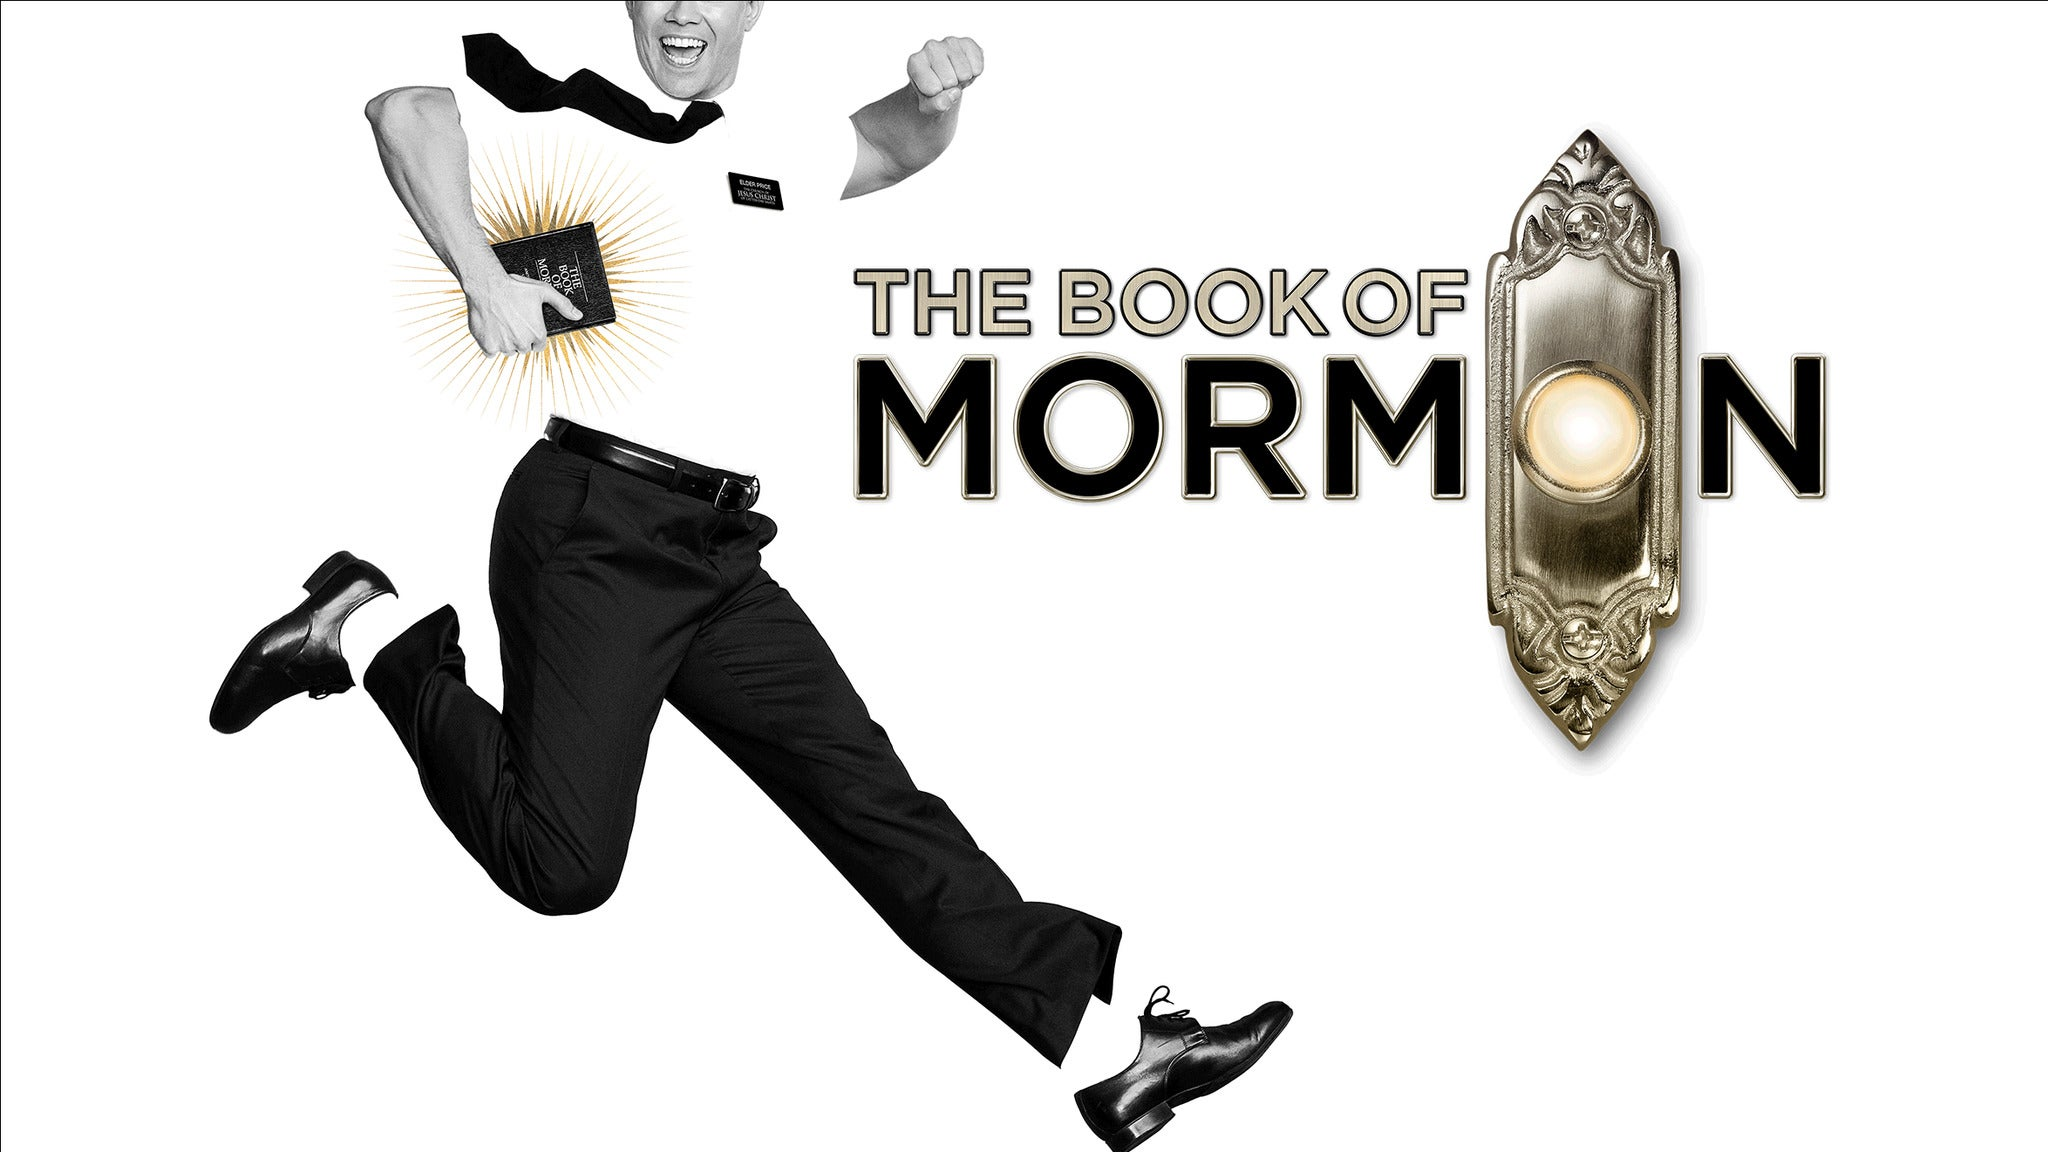 The Book of Mormon at Eccles Theater - Salt Lake City